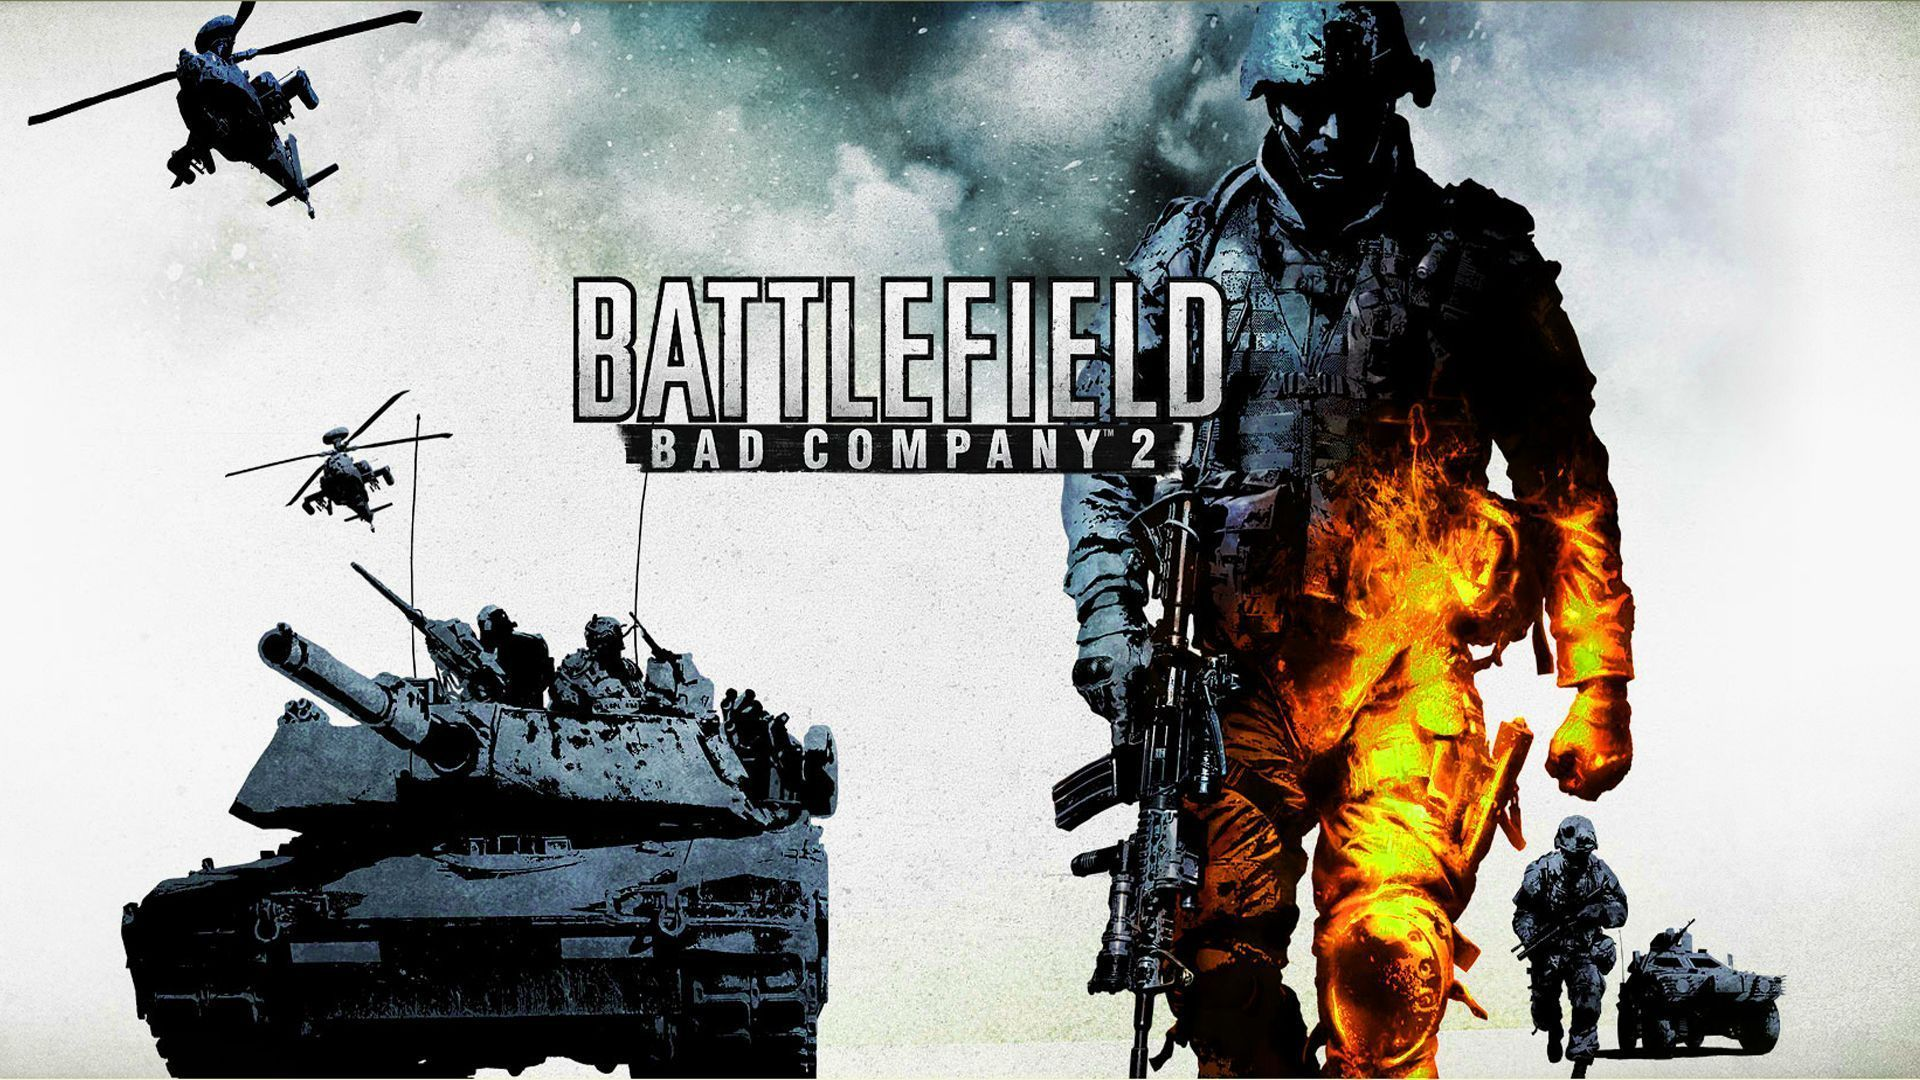 Battlefield-Bad-Company-by-Stiannius-1920%C3%971080-wallpaper-wp3402918